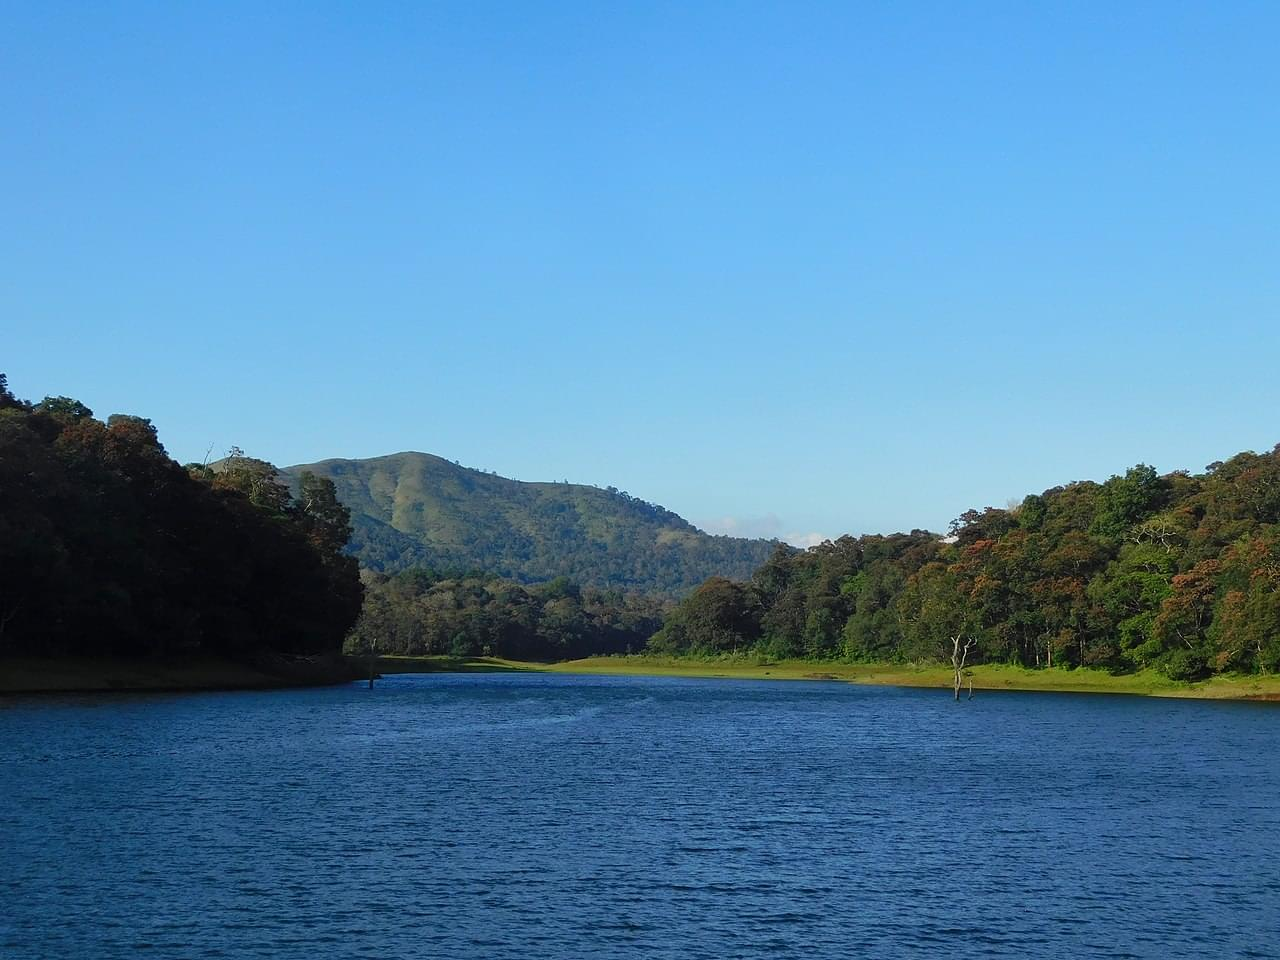 6-Night-7-Days-Tour-package-of-Kerala-with-Vagamon-JustWravel-1597392389-3.jpg